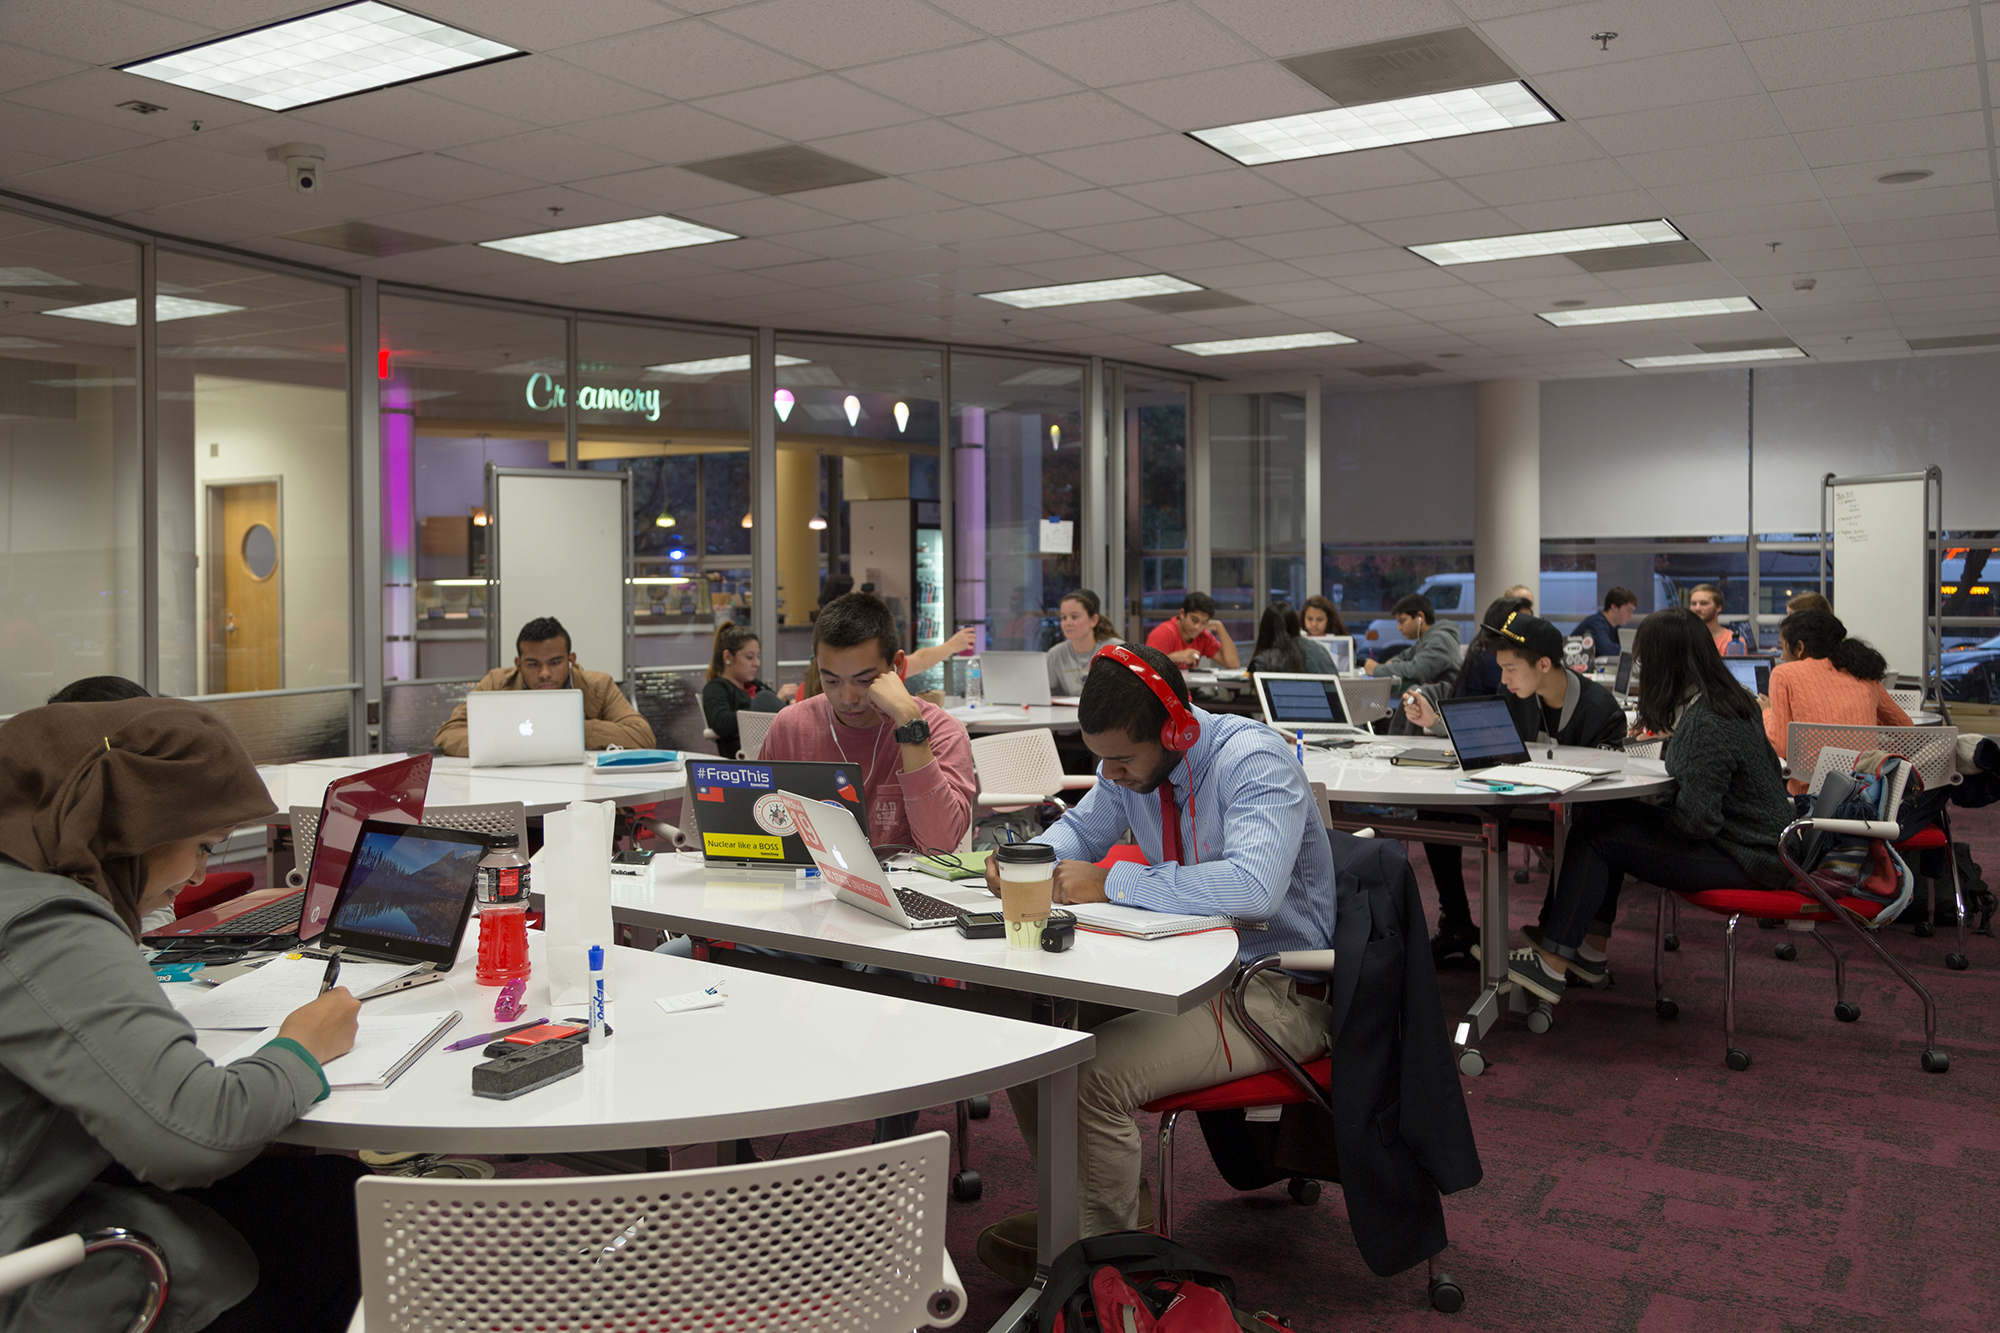 The Fishbowl Forum at DH Hill, a large glass walled room with desks, chairs, and whiteboards